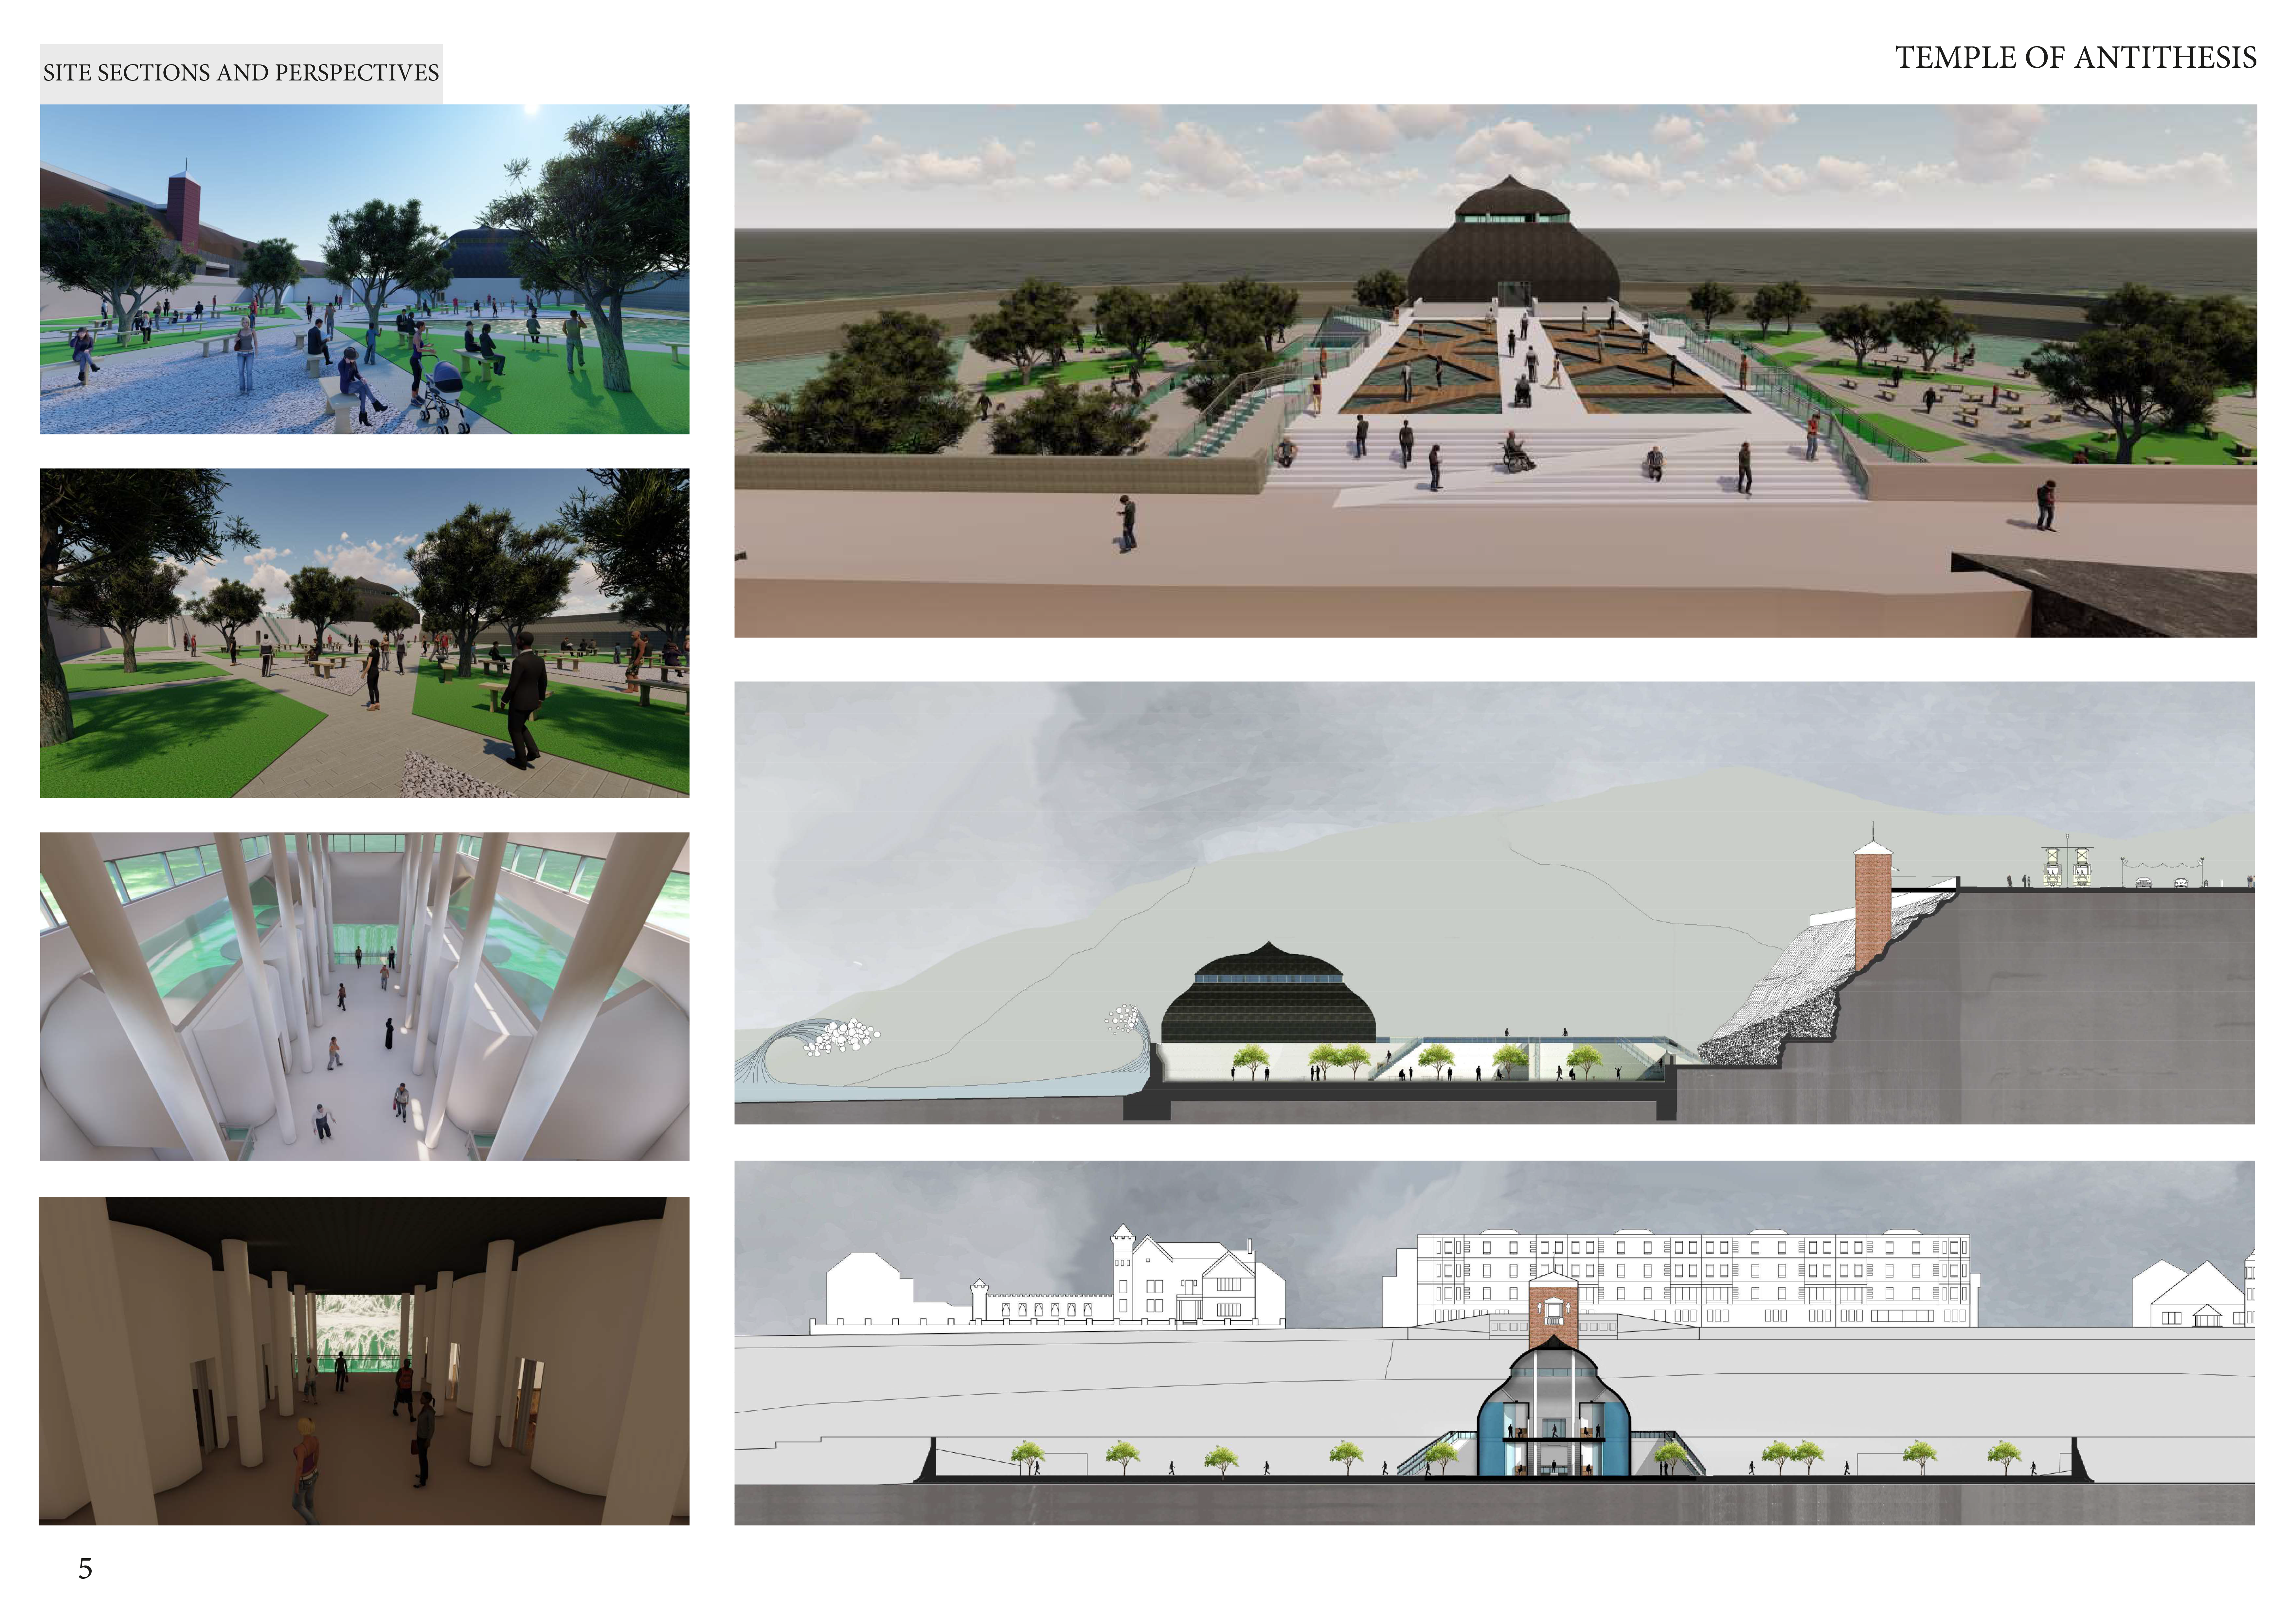 Site sections and Perspectives Image